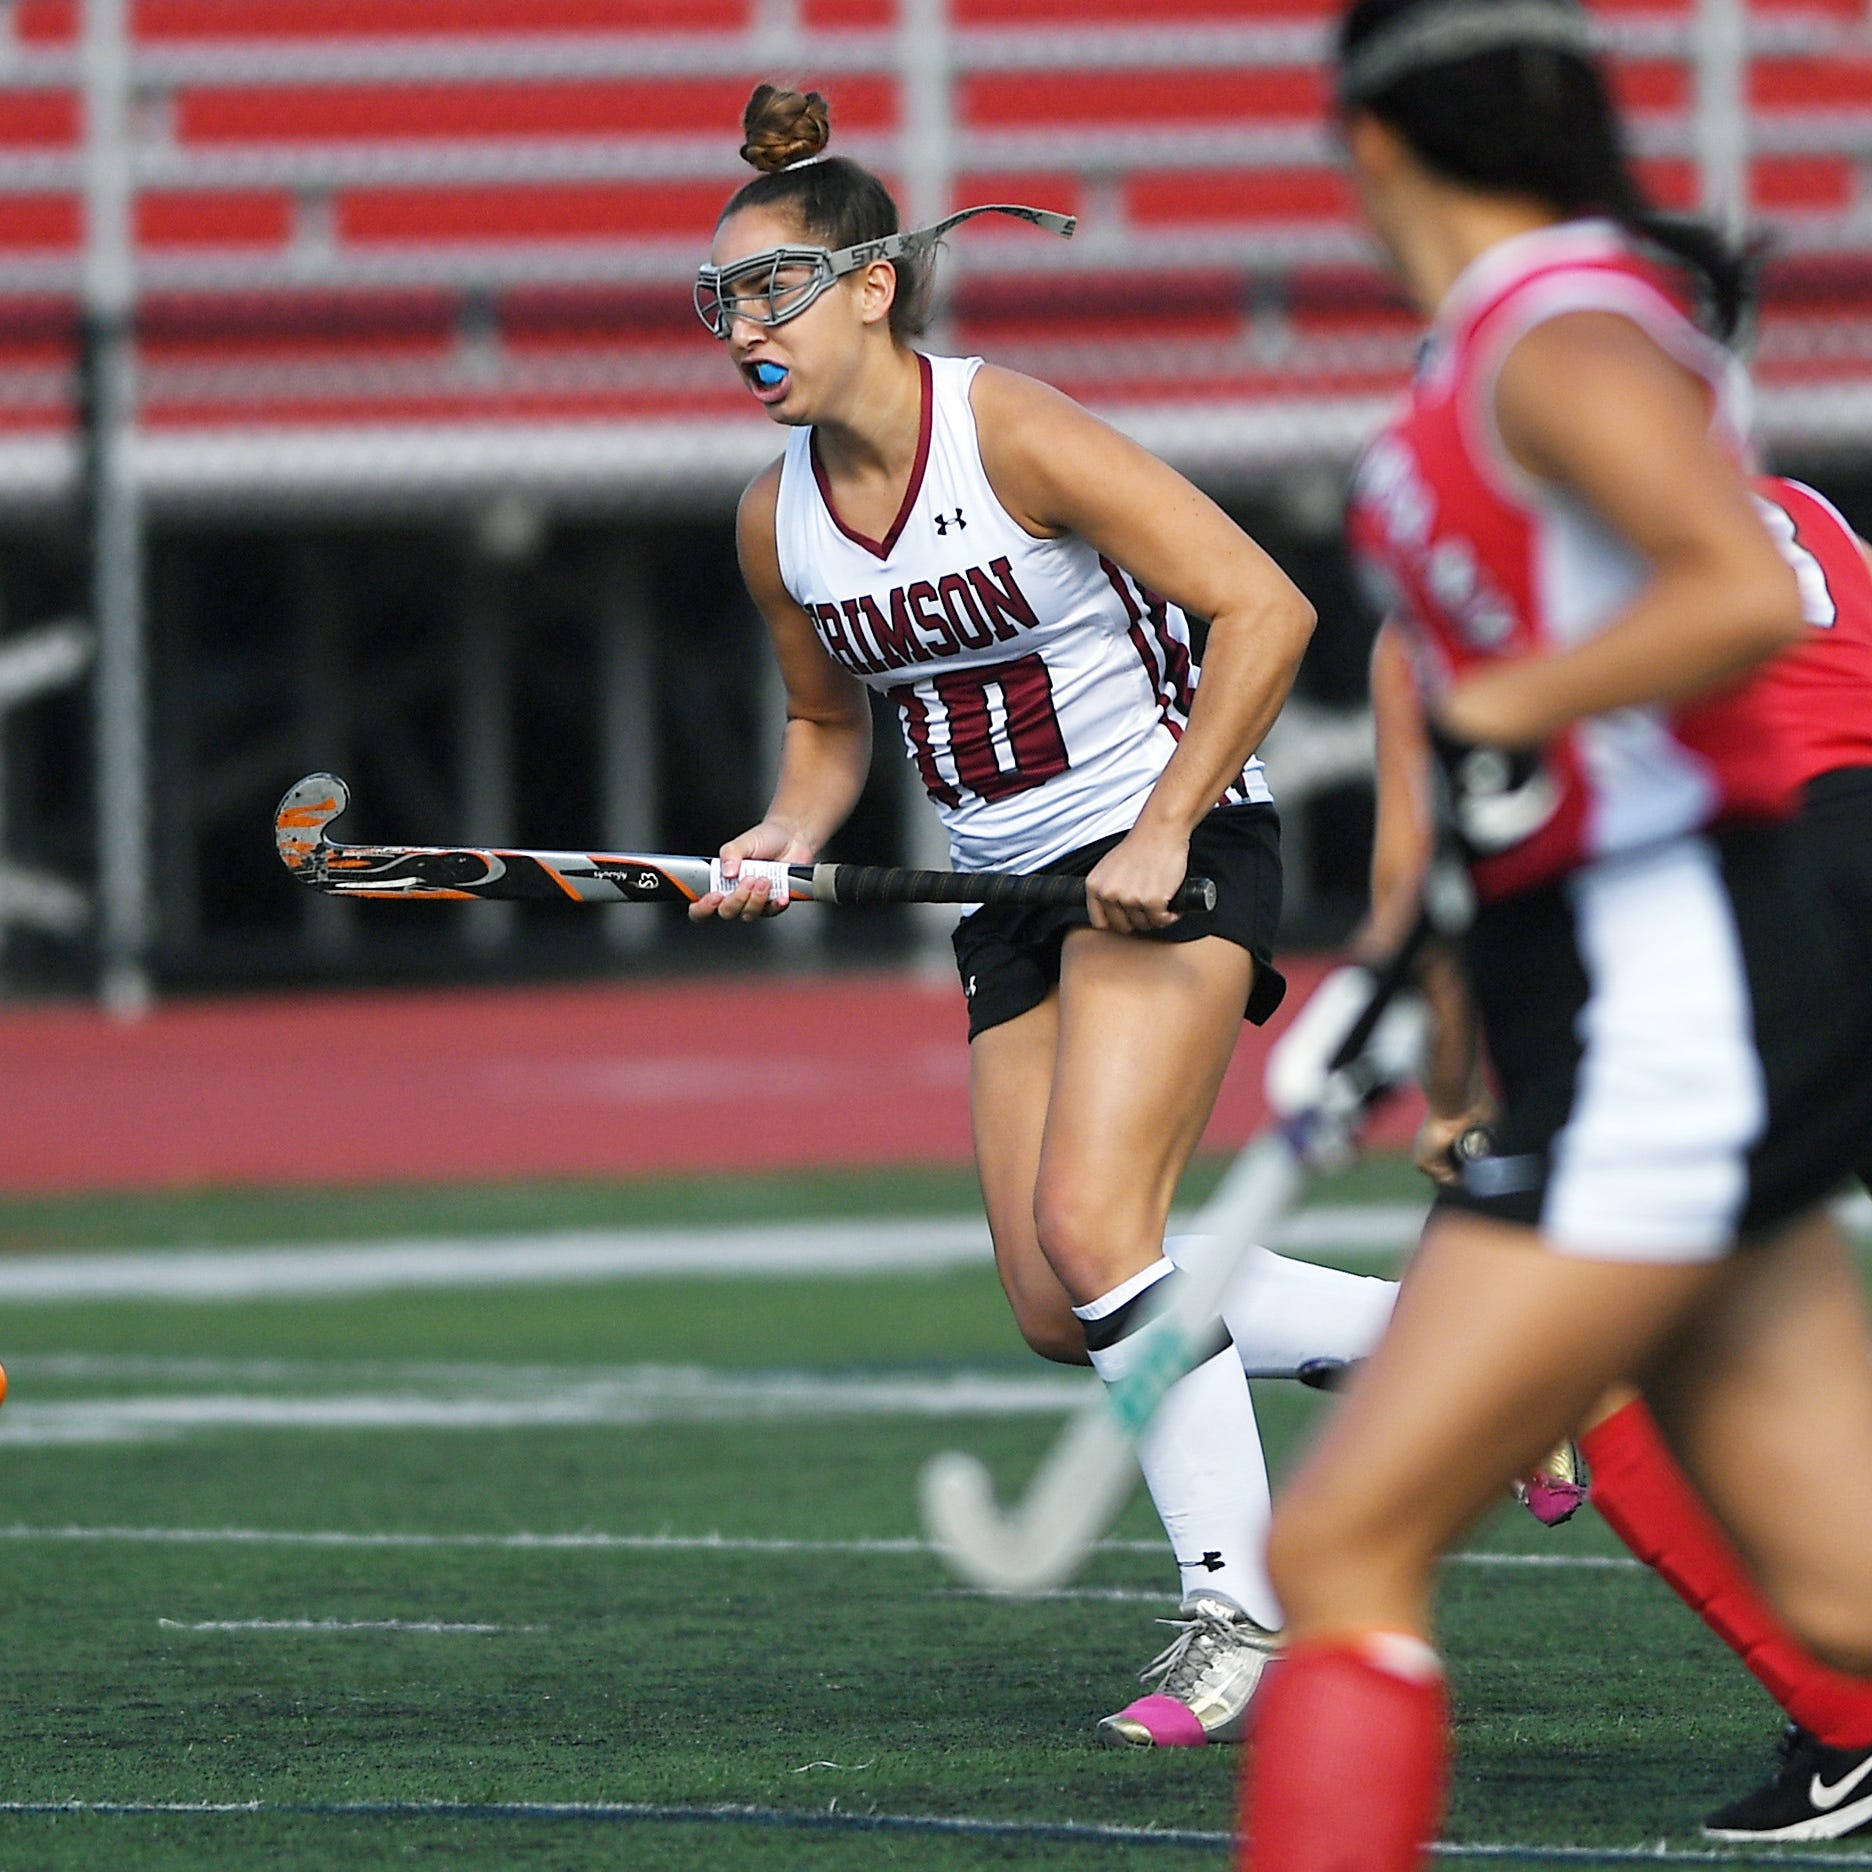 Madison, Morristown-Beard to meet for Morris County Tournament field hockey title